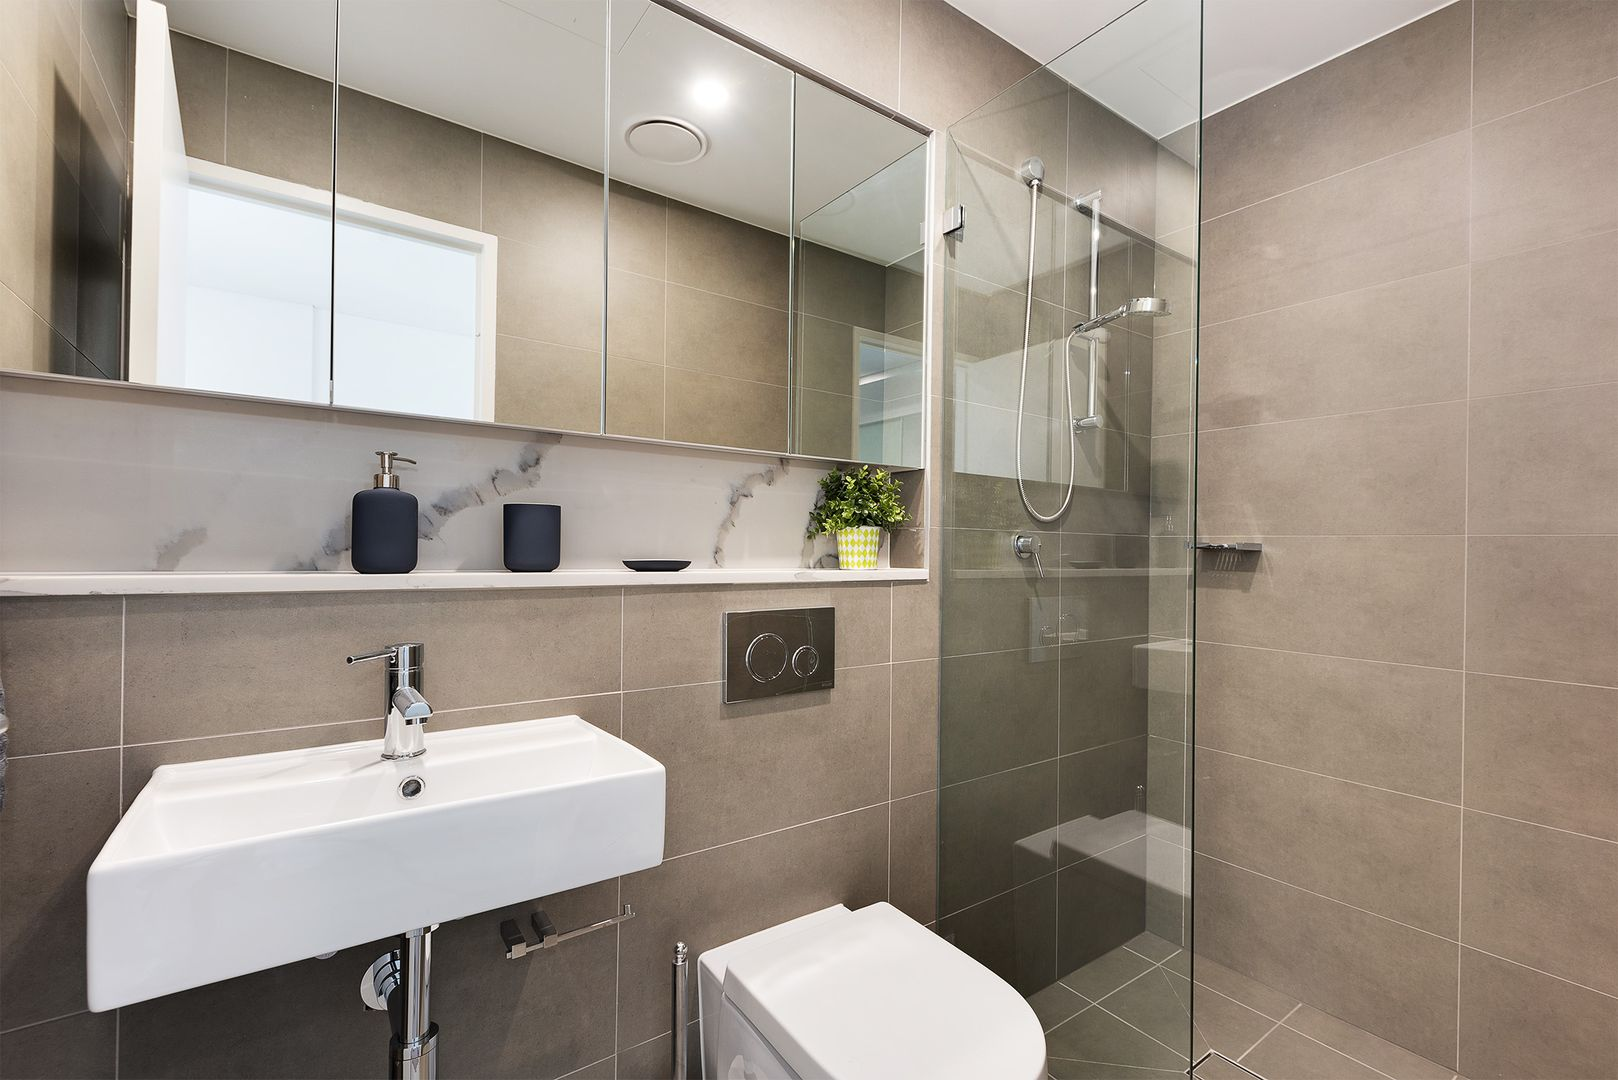 18/117-119 Bowden Street, Meadowbank NSW 2114, Image 2